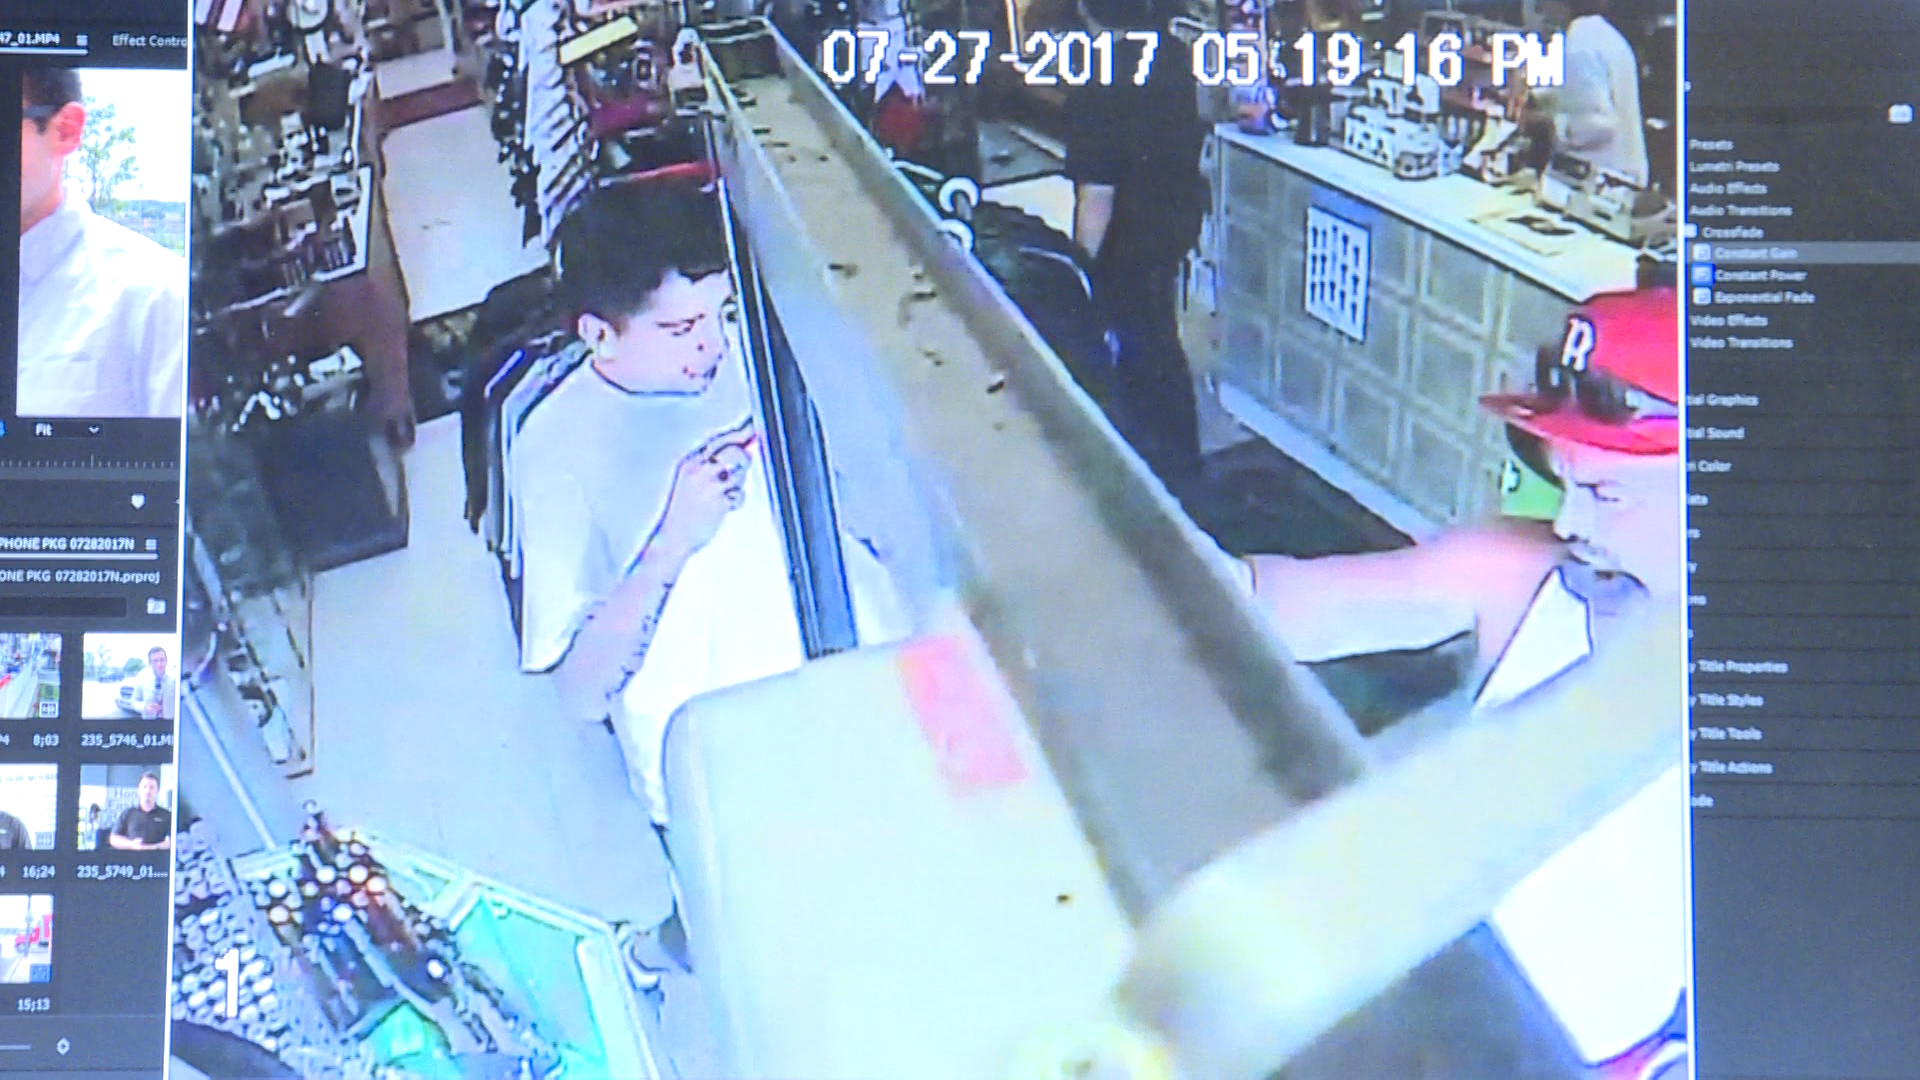 Man now phone-less after crooks swipe it on store camera